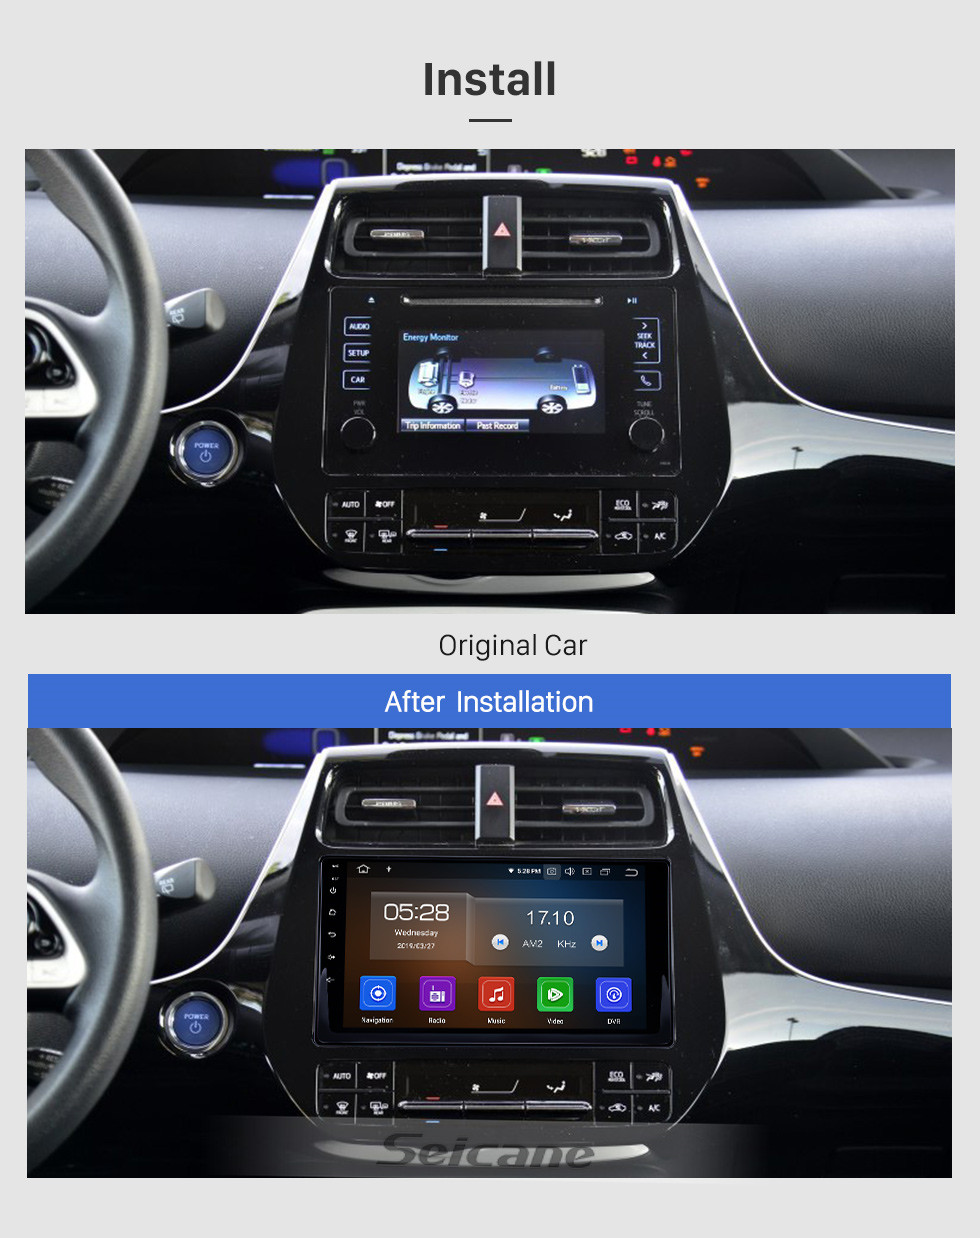 Seicane 2016 Toyota Prius Android 9.0 9 inch GPS Navigation Radio Bluetooth AUX HD Touchscreen USB Carplay support TPMS DVR Digital TV Backup camera